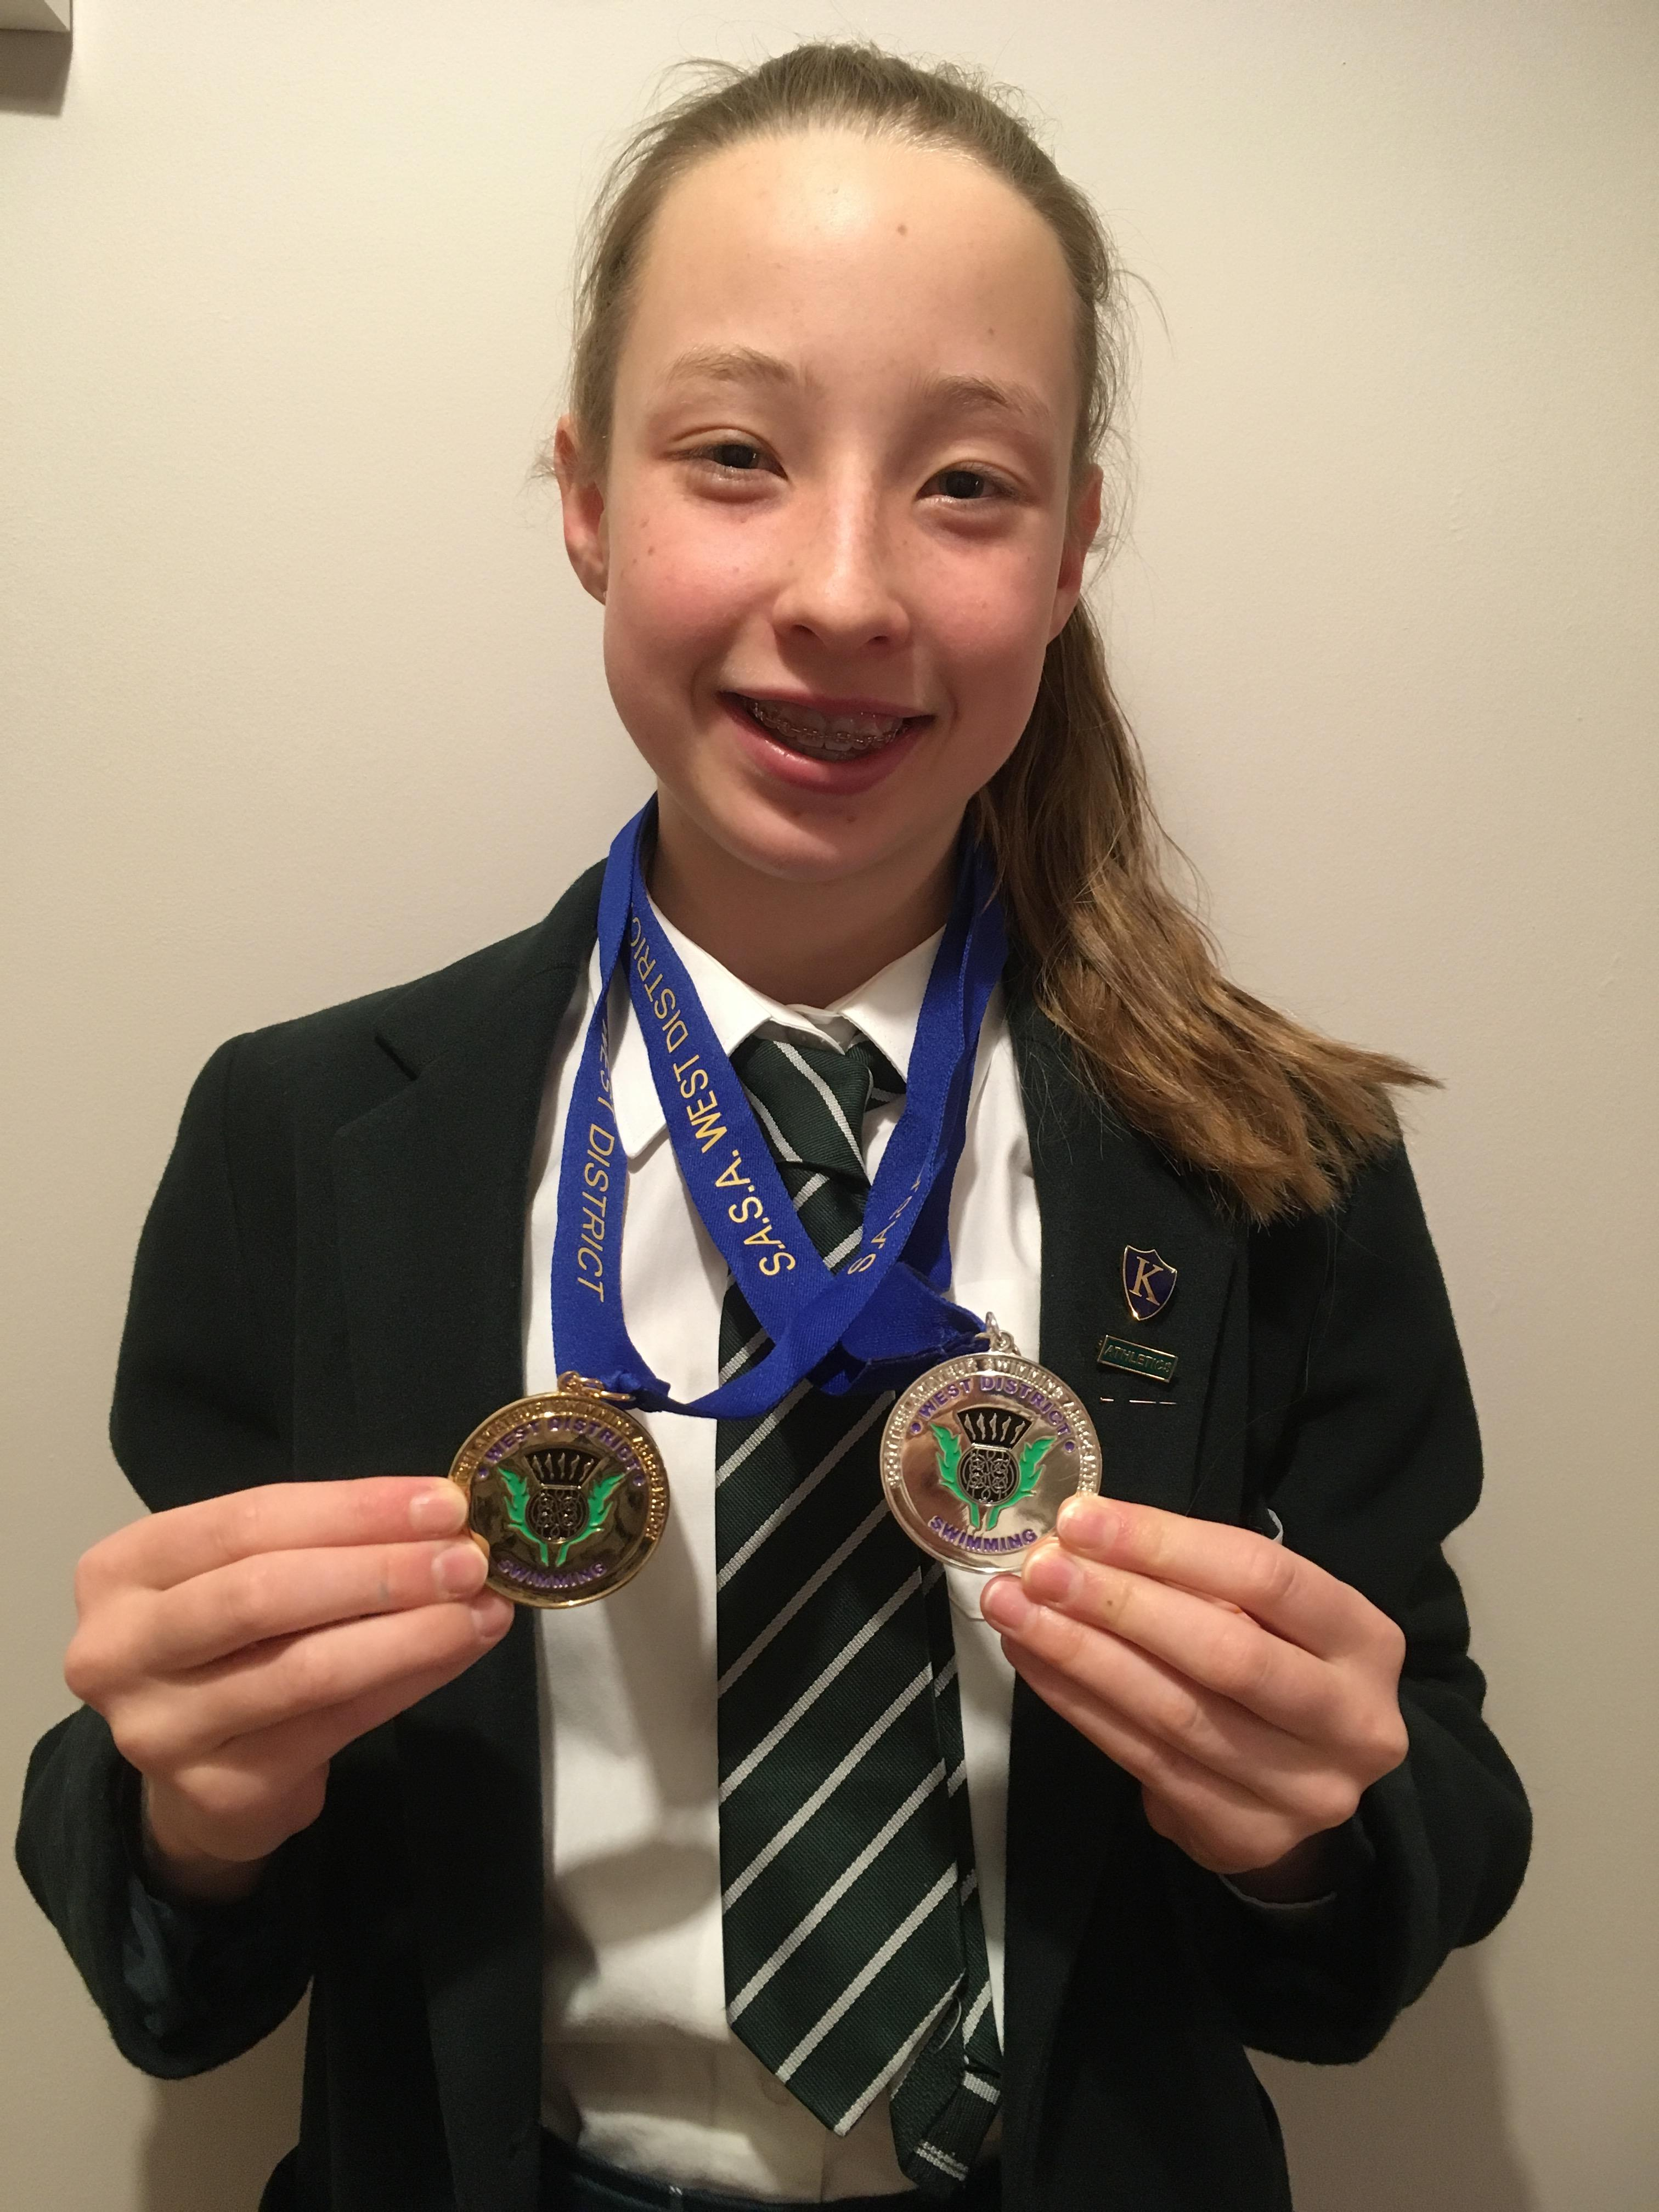 St Columba's Pupil Competes at the West District Age Group Swimming Championships